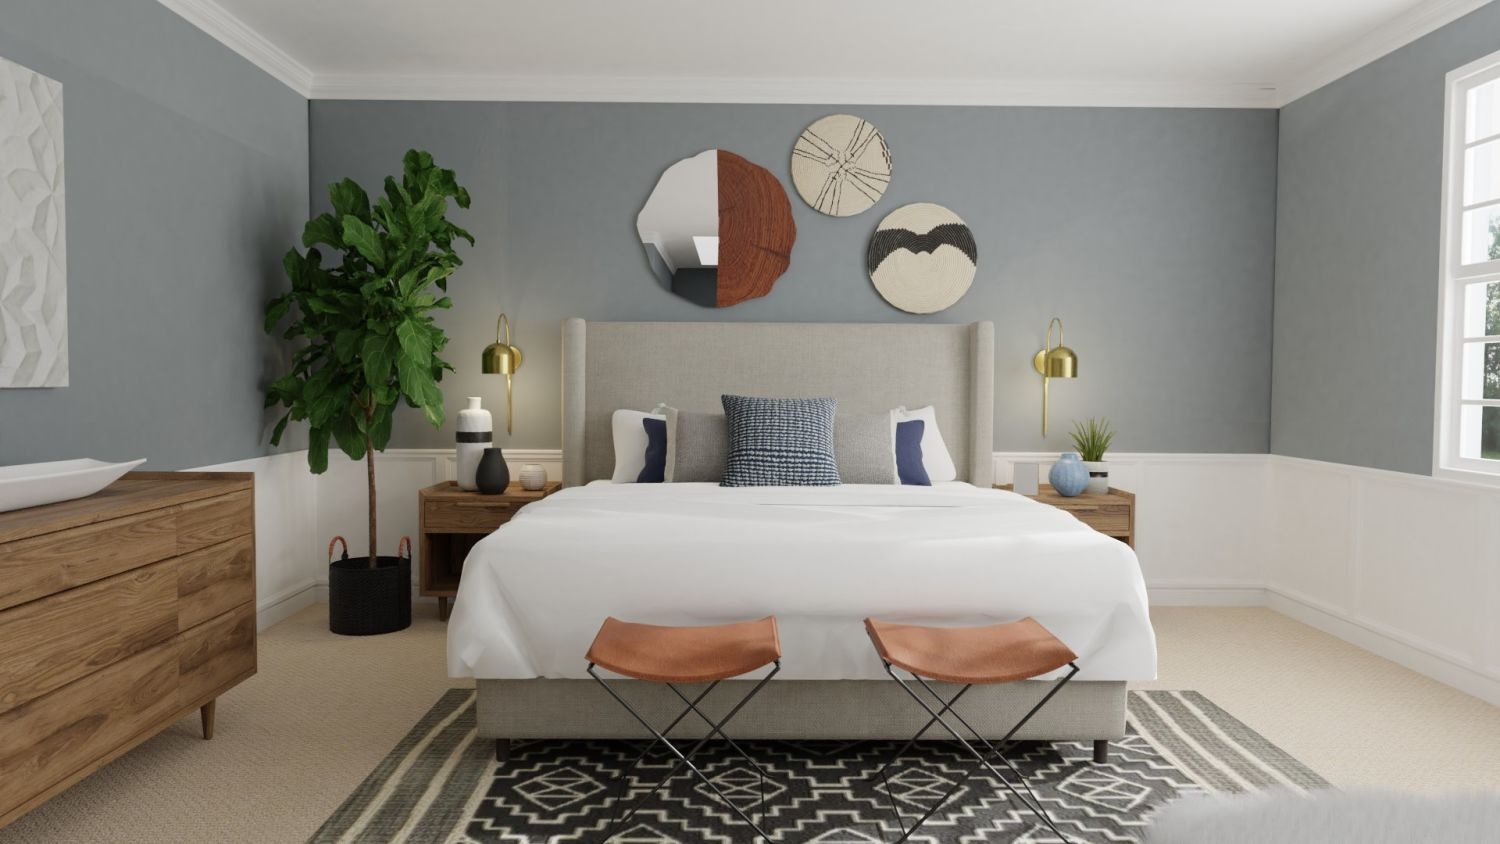 Warm and Inviting: Modern Eclectic Design By Spacejoy